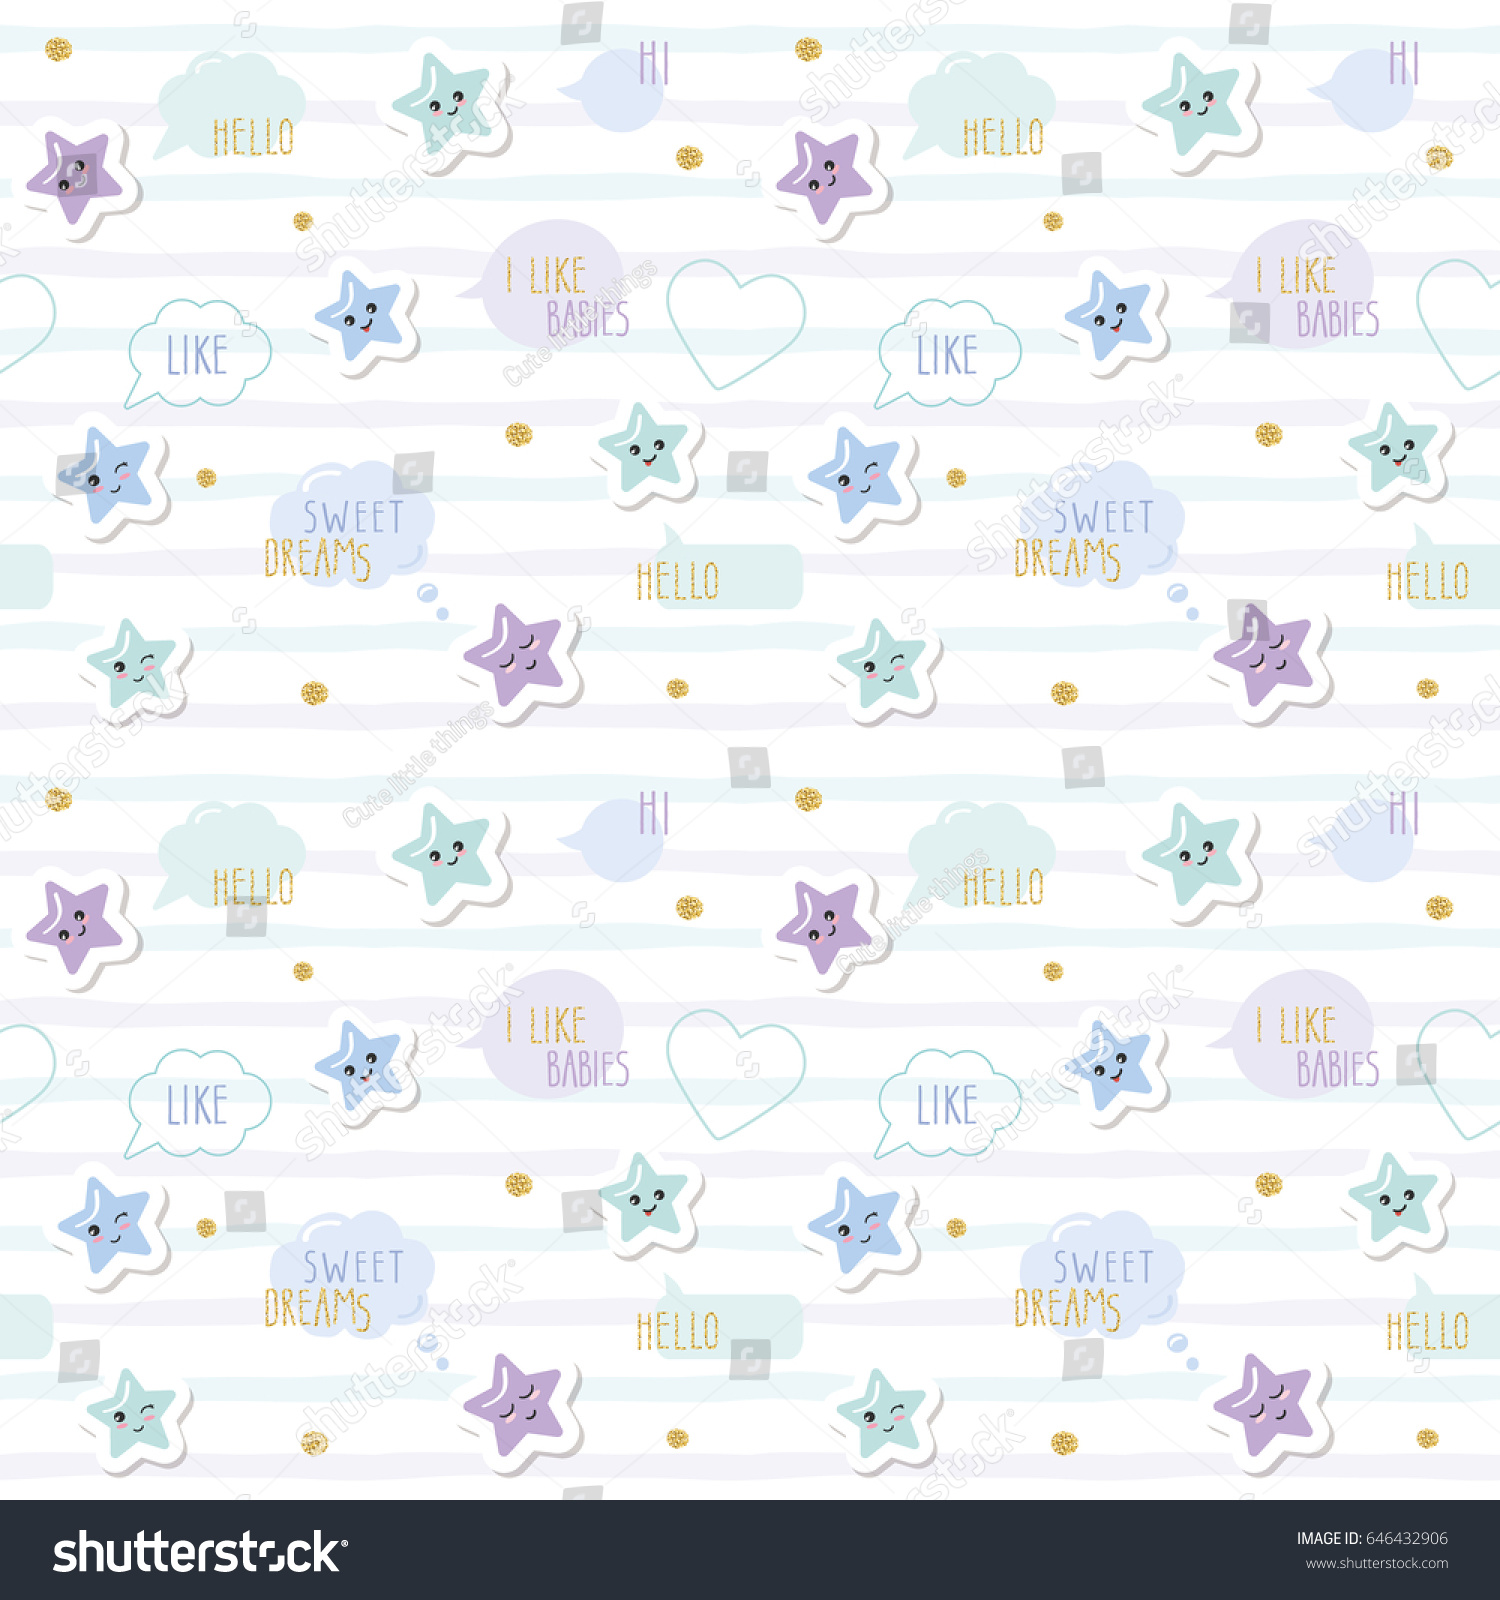 cute pattern background cartoon kawaii stars stock illustration